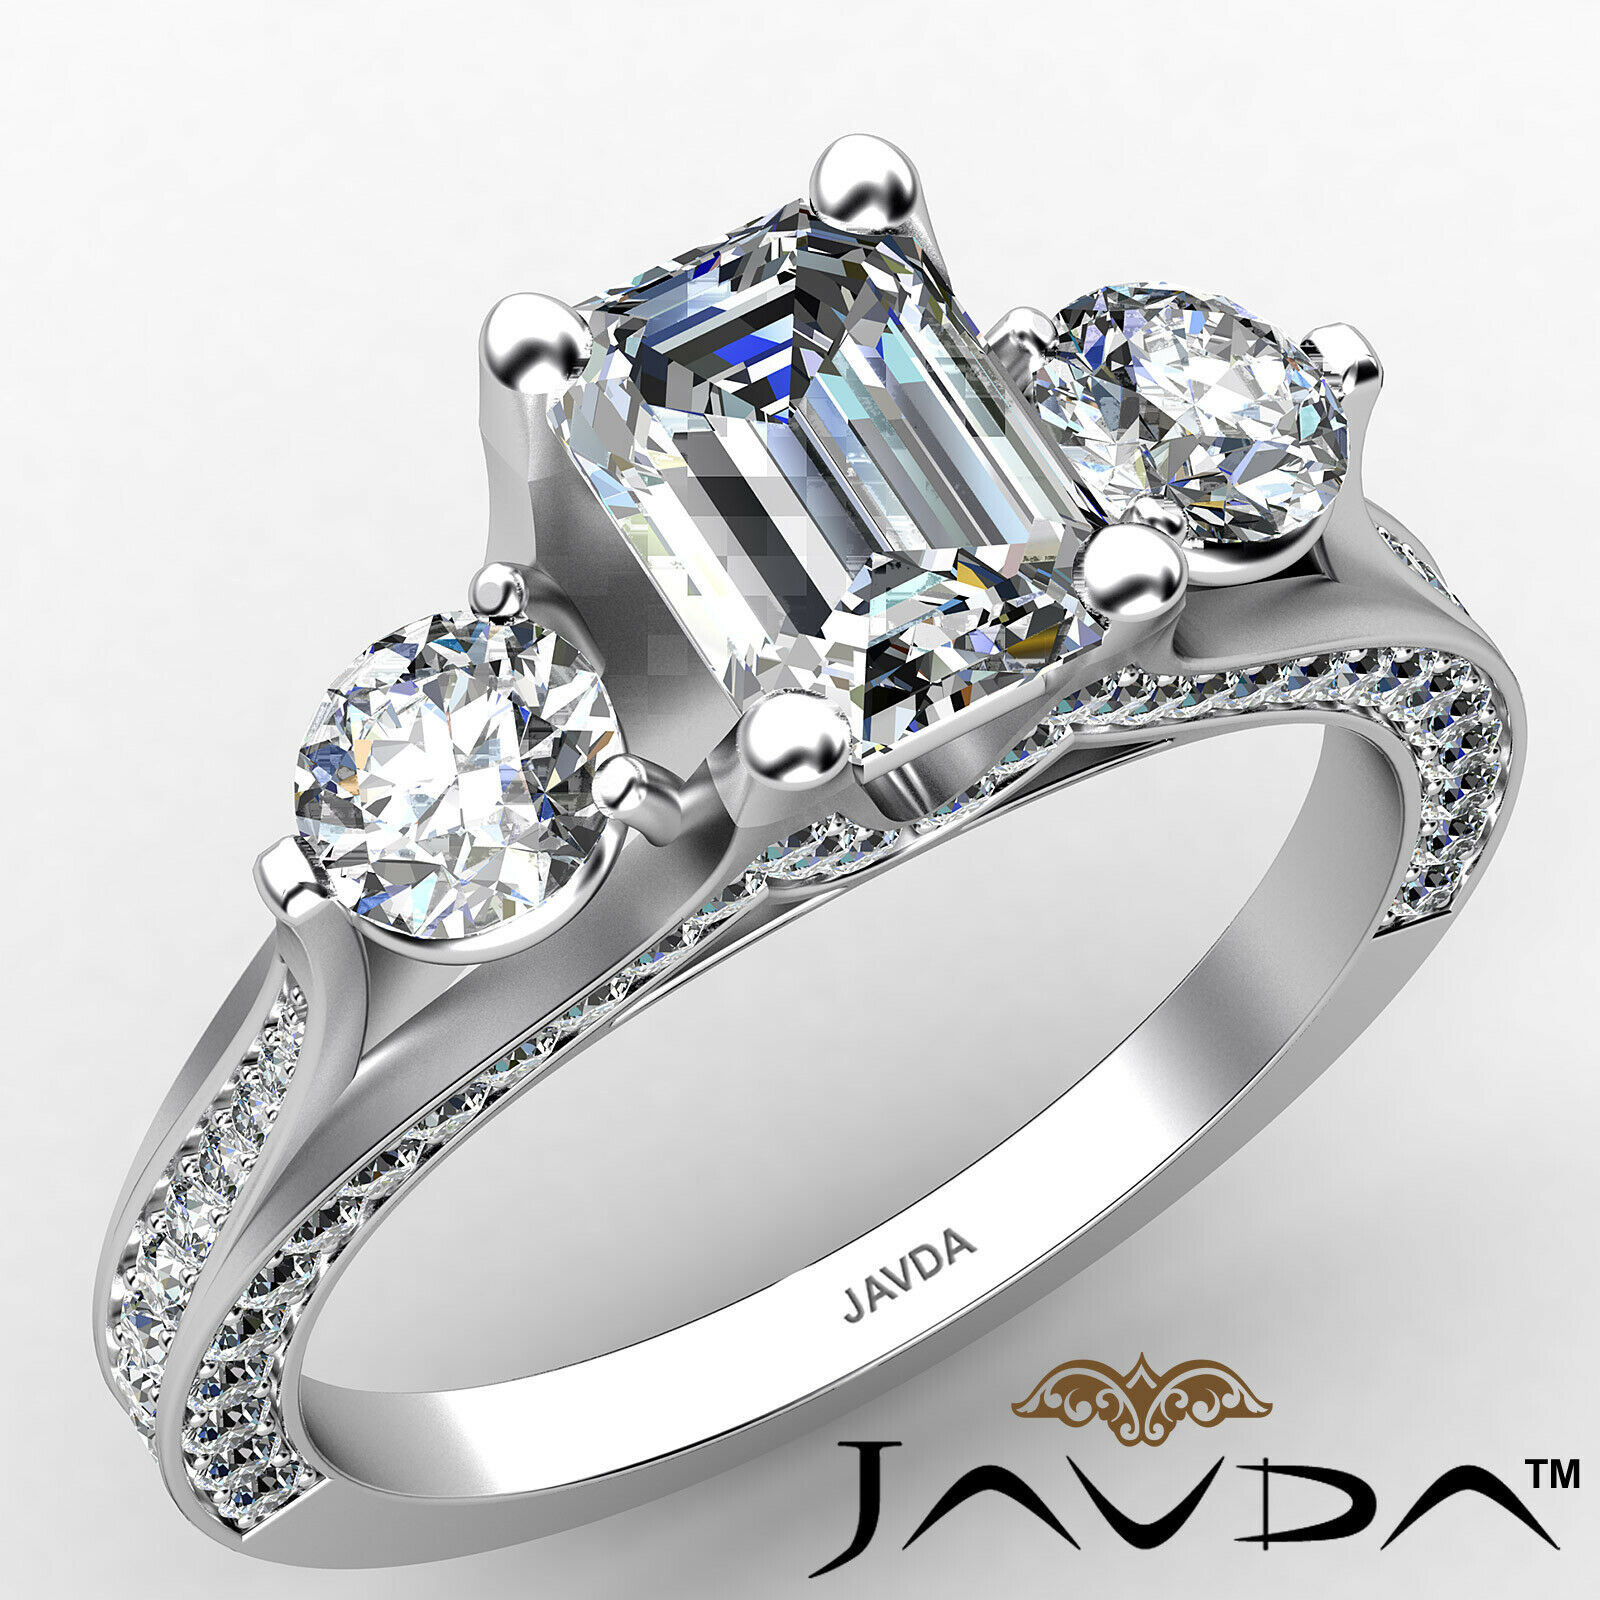 3stone Emerald Diamond Engagement Ring GIA Certified J Color & VVS1 clarity 2ctw